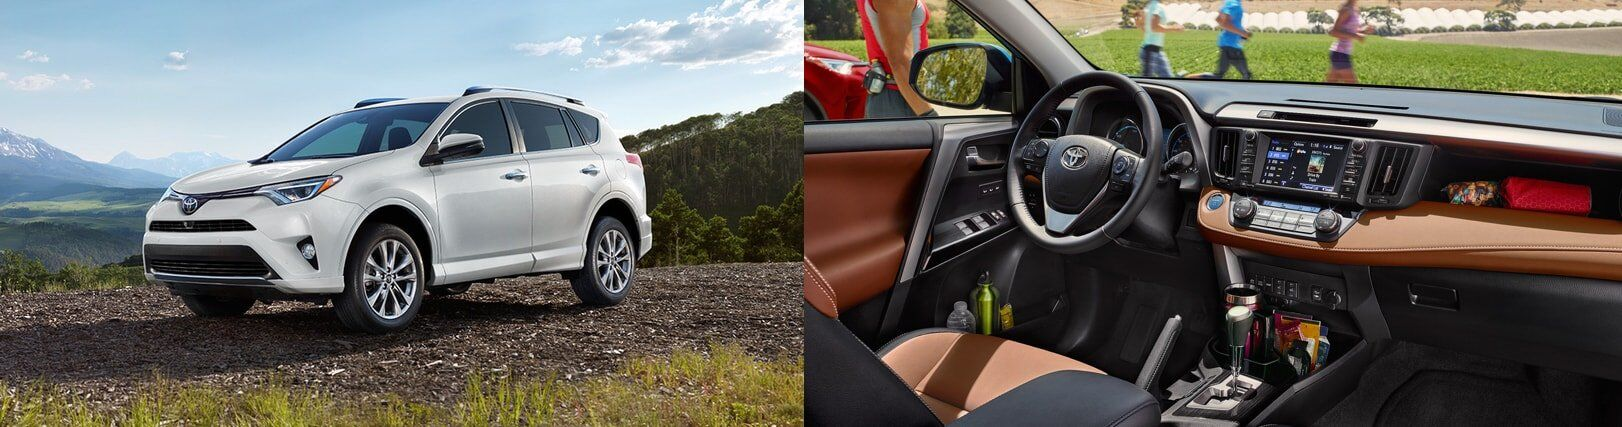 2017 Toyota RAV4 Interior and Exterior